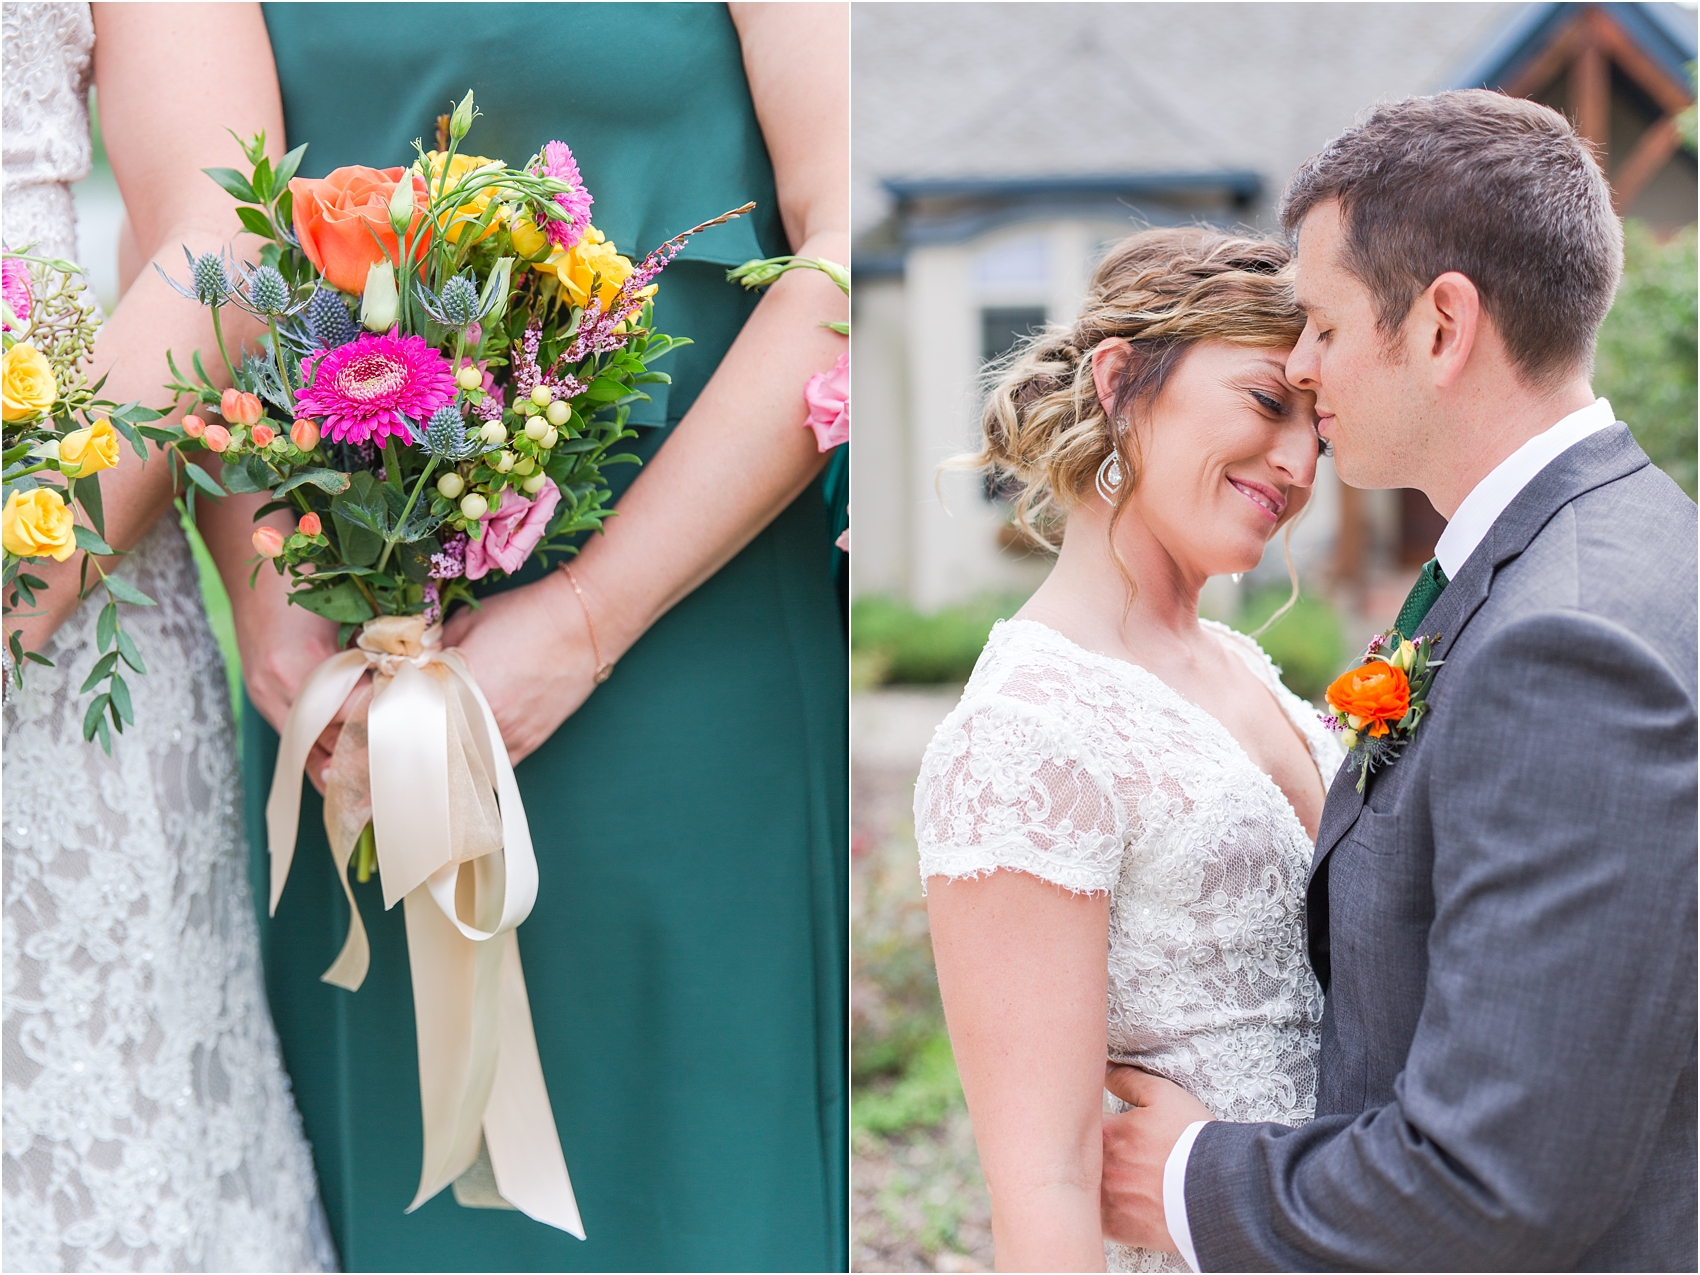 romantic-intimate-backyard-wedding-photos-at-private-estate-in-ann-arbor-mi-by-courtney-carolyn-photography_0070.jpg